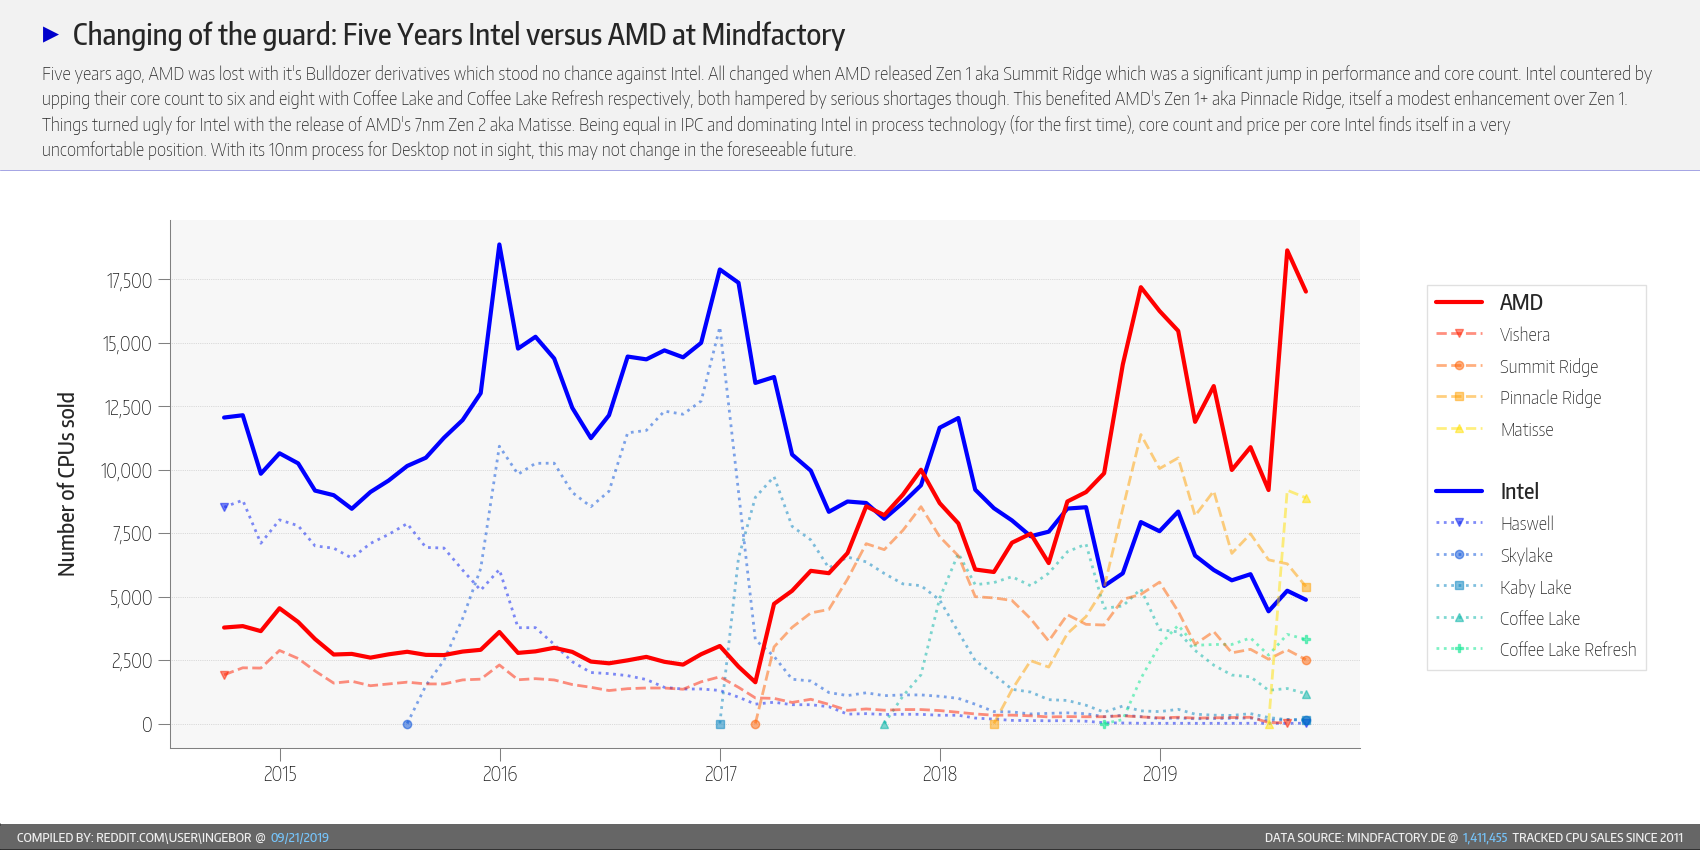 Amd Outselling Intel By More Than Double Analyzing 5 Year Historical Sales At Mindfactory De